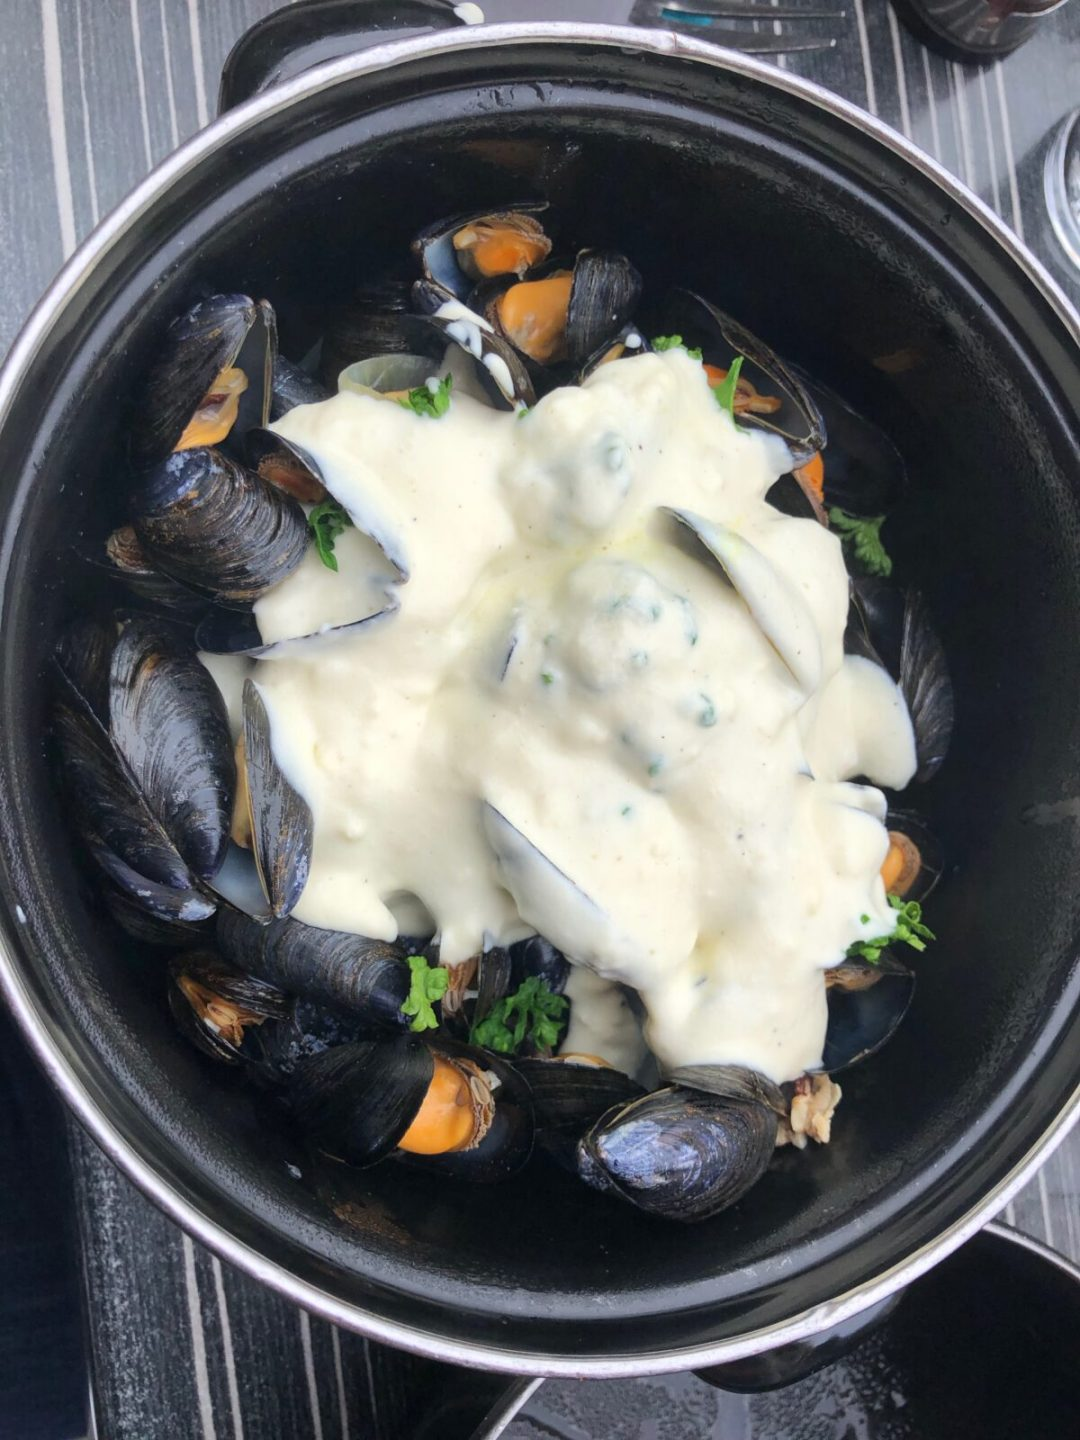 Crotoy moule frites